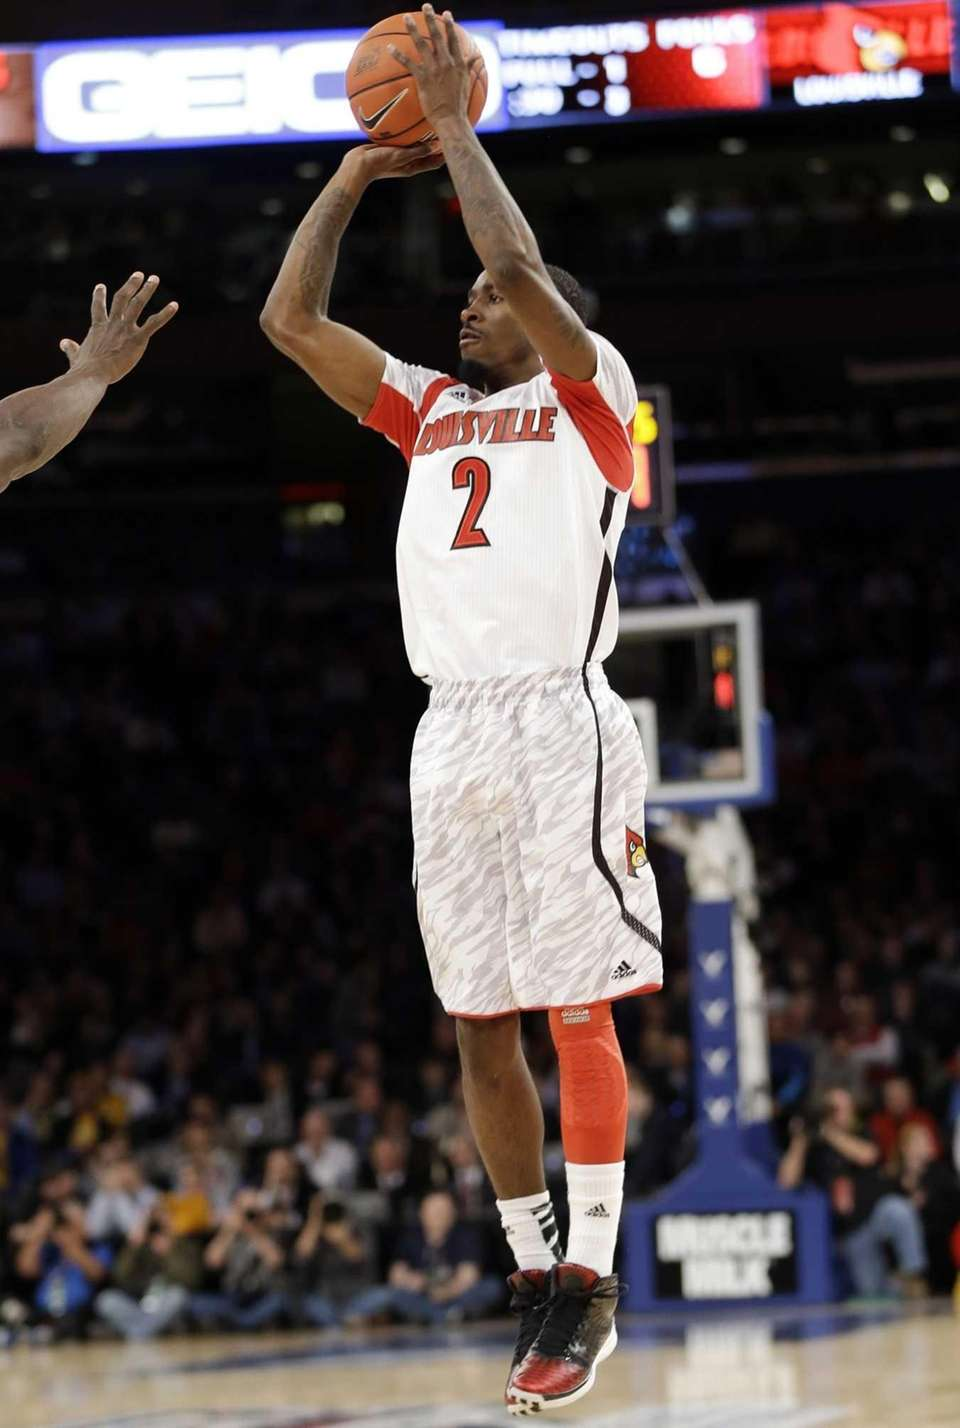 Louisville's Russ Smith shoots during the first half.